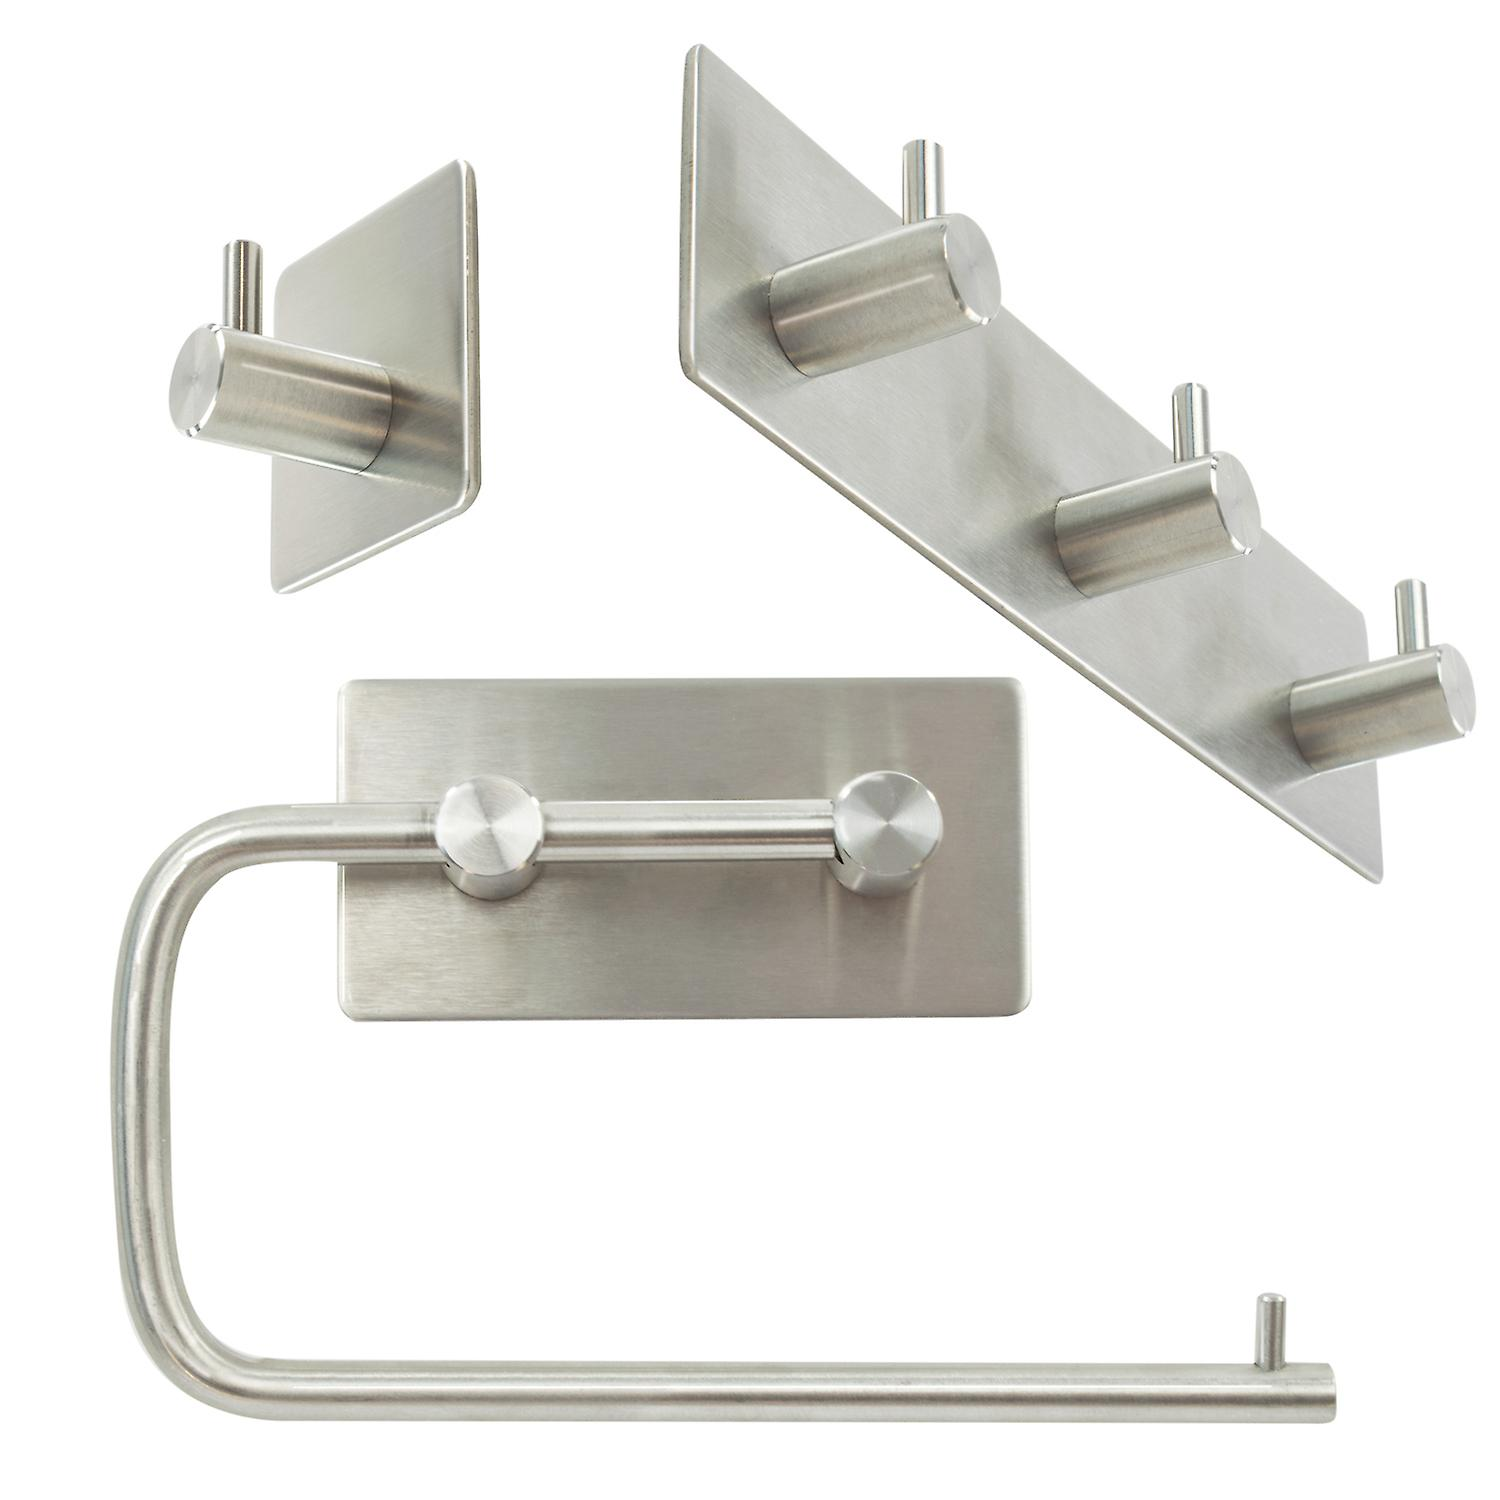 3PC Stainless Steel Bathroom Hooks for Towels Bathroom Shower Kitchen